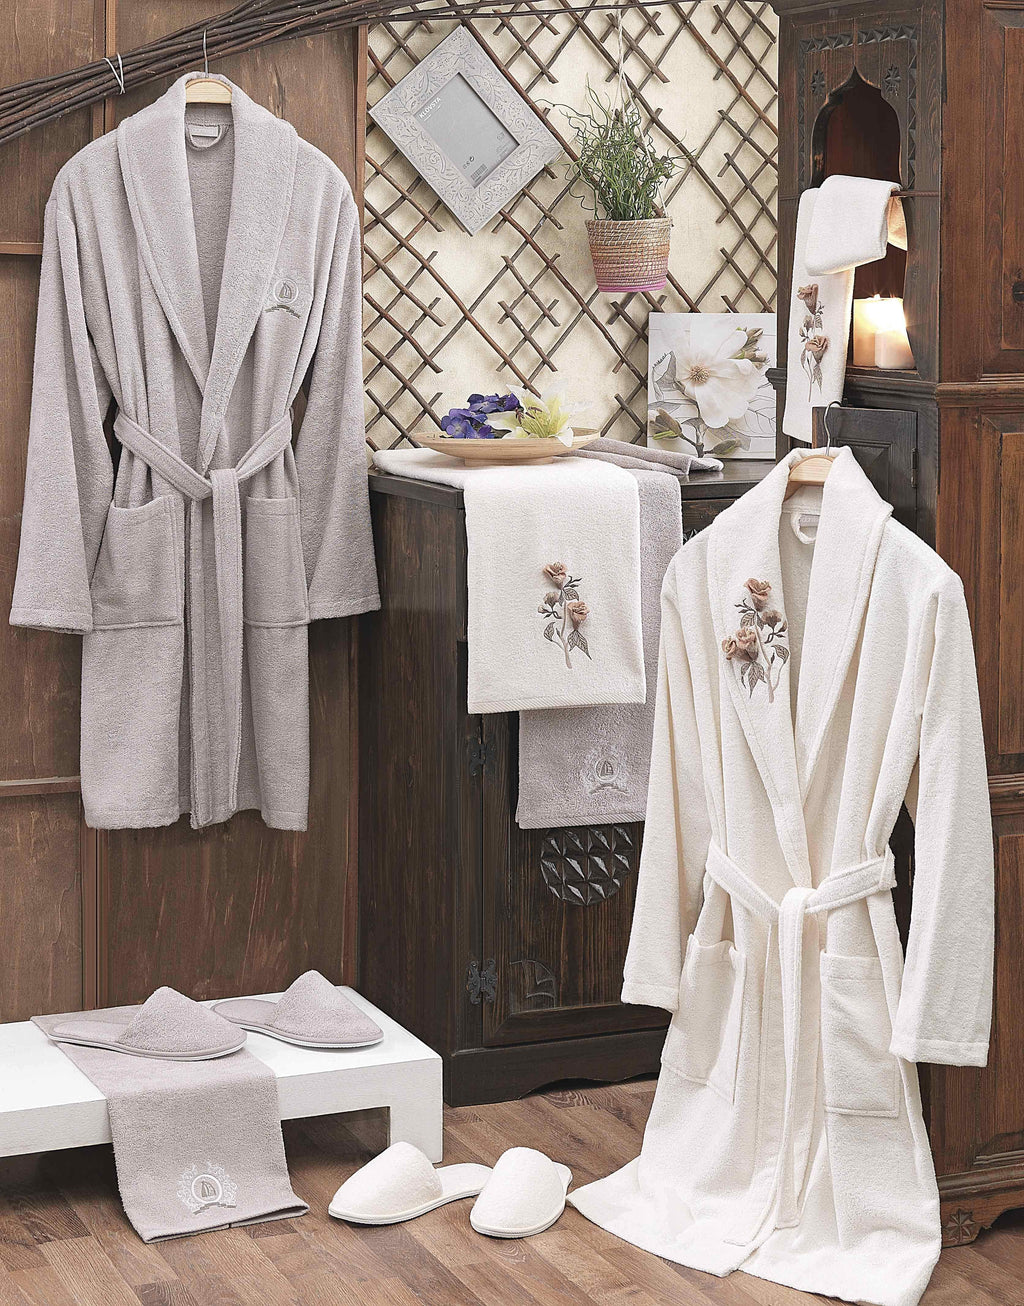 8PCS BAMBOO BATHROBE FAMILY SET WITH 3D FLOWER EMBROIDERY DESIGN - COTTONISH